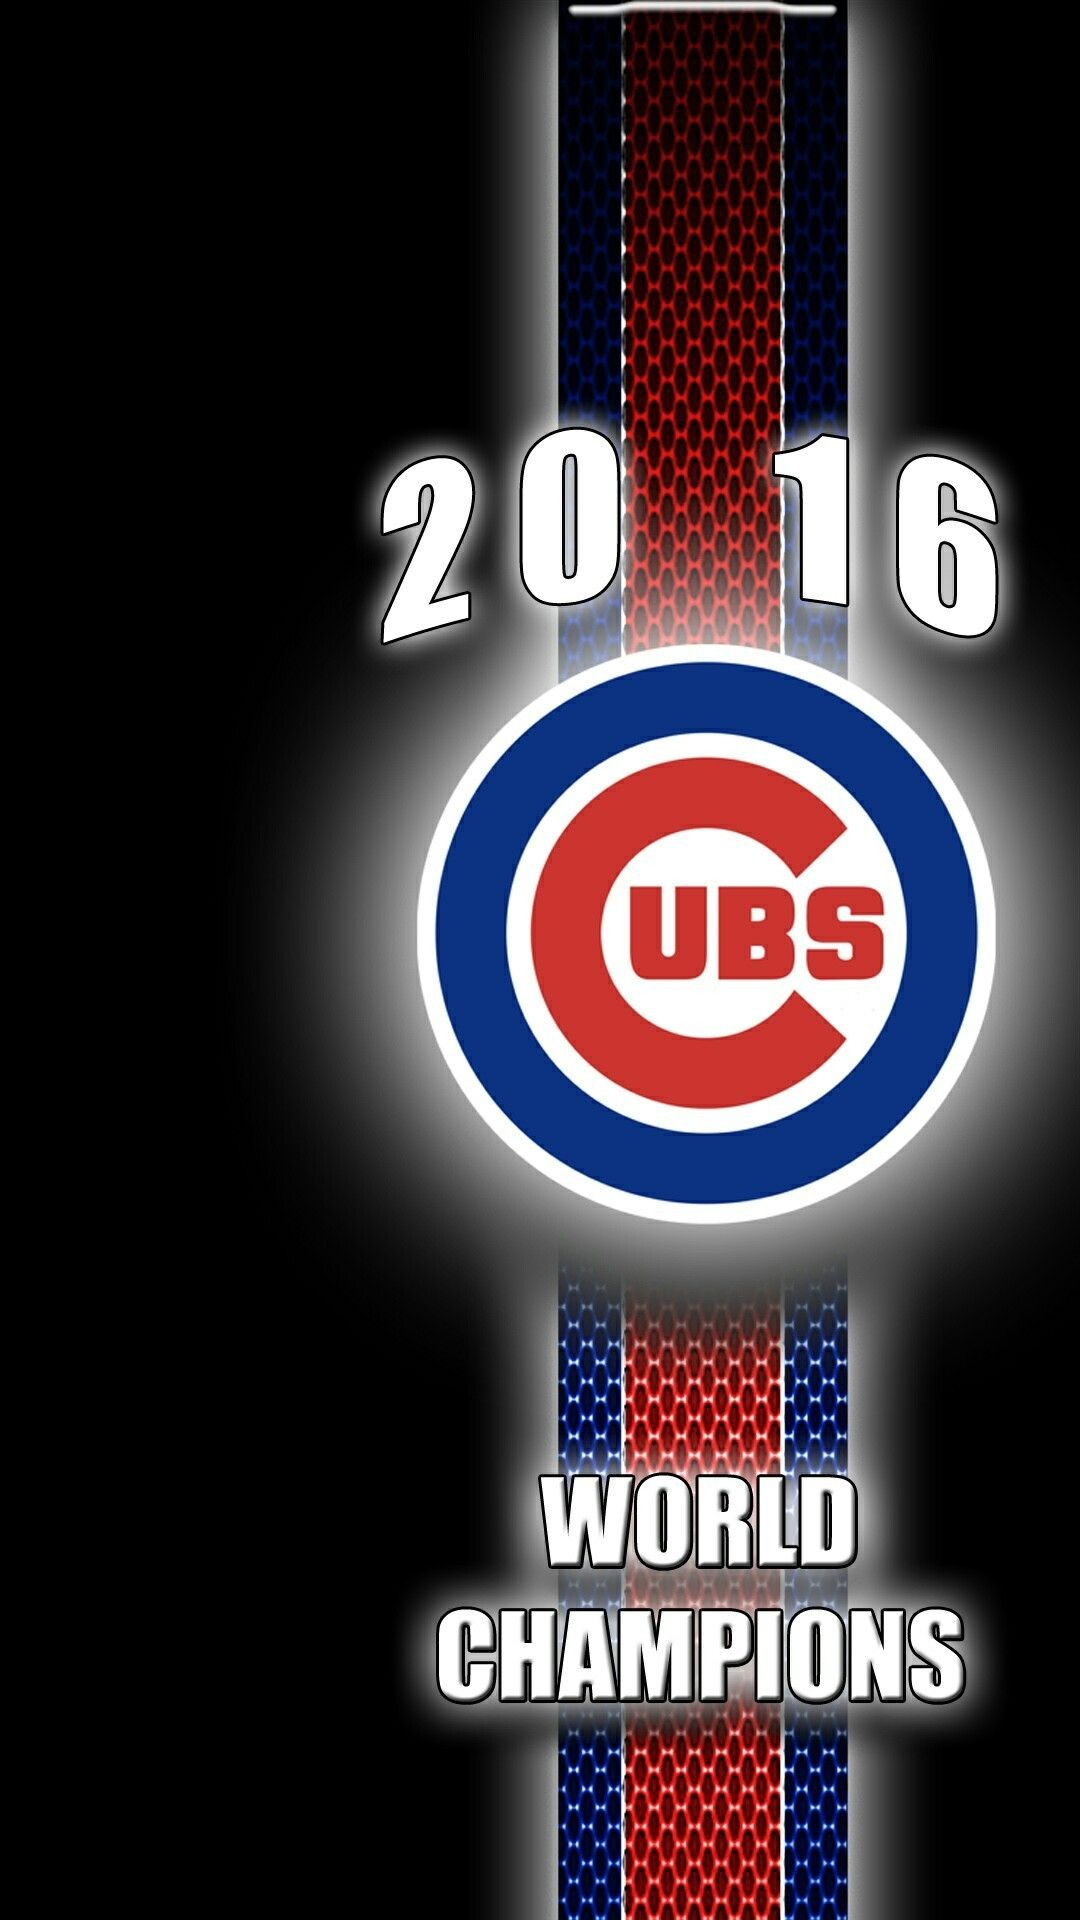 12 Premium Chicago Cubs Iphone Wallpaper Save In Your PC